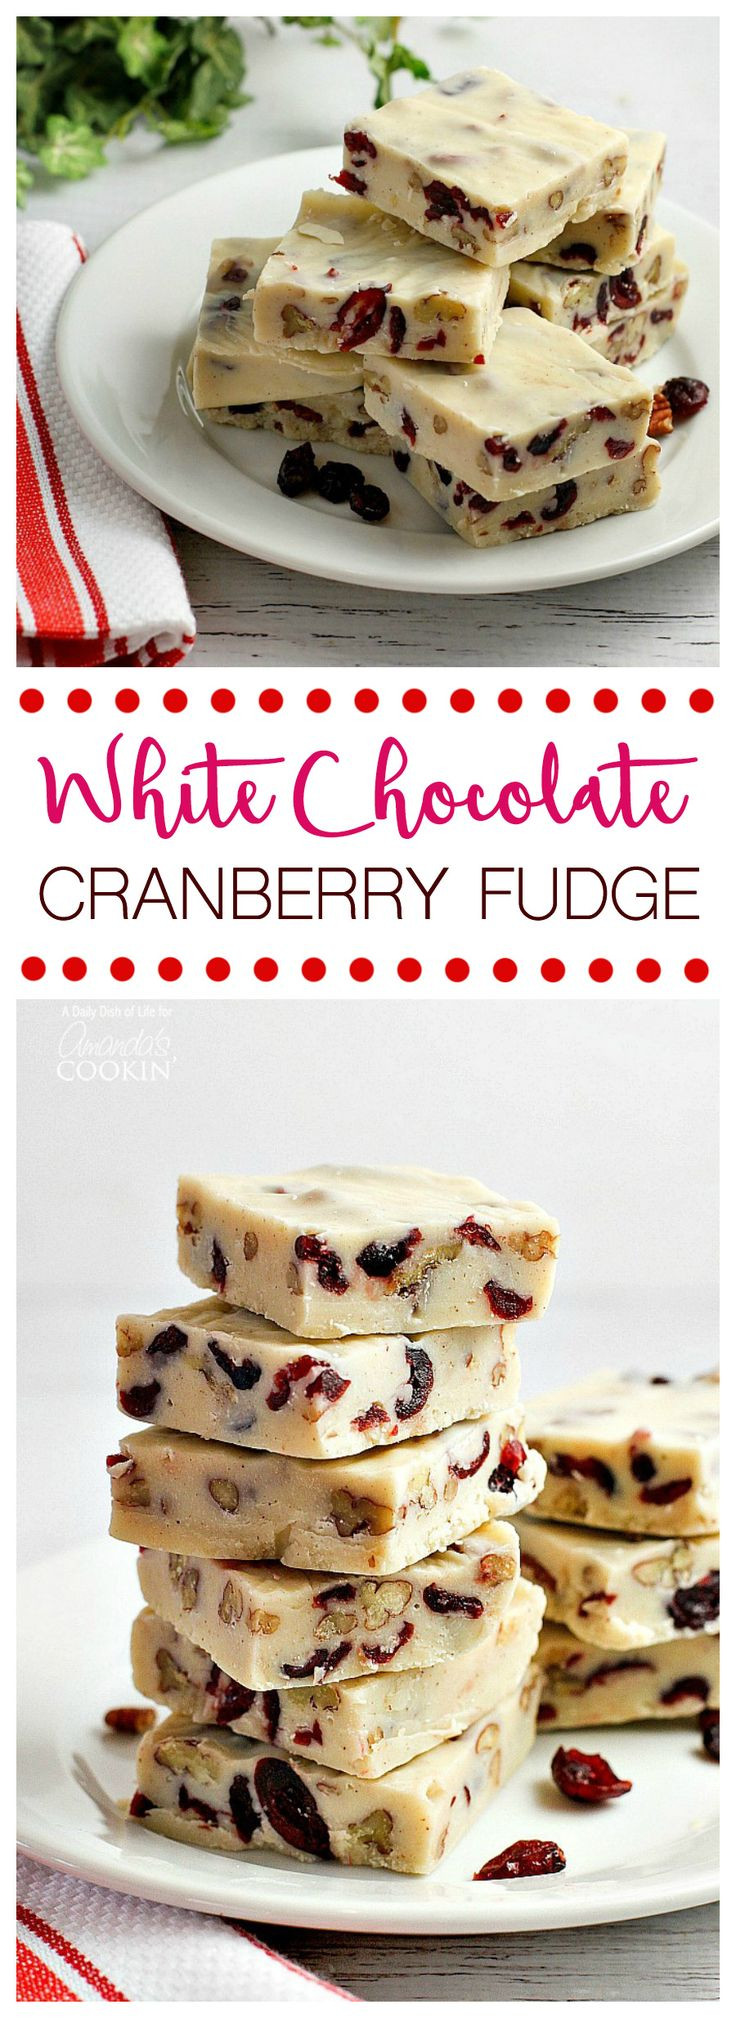 White Chocolate Candy Recipes For Christmas  1000 images about Baking on Pinterest